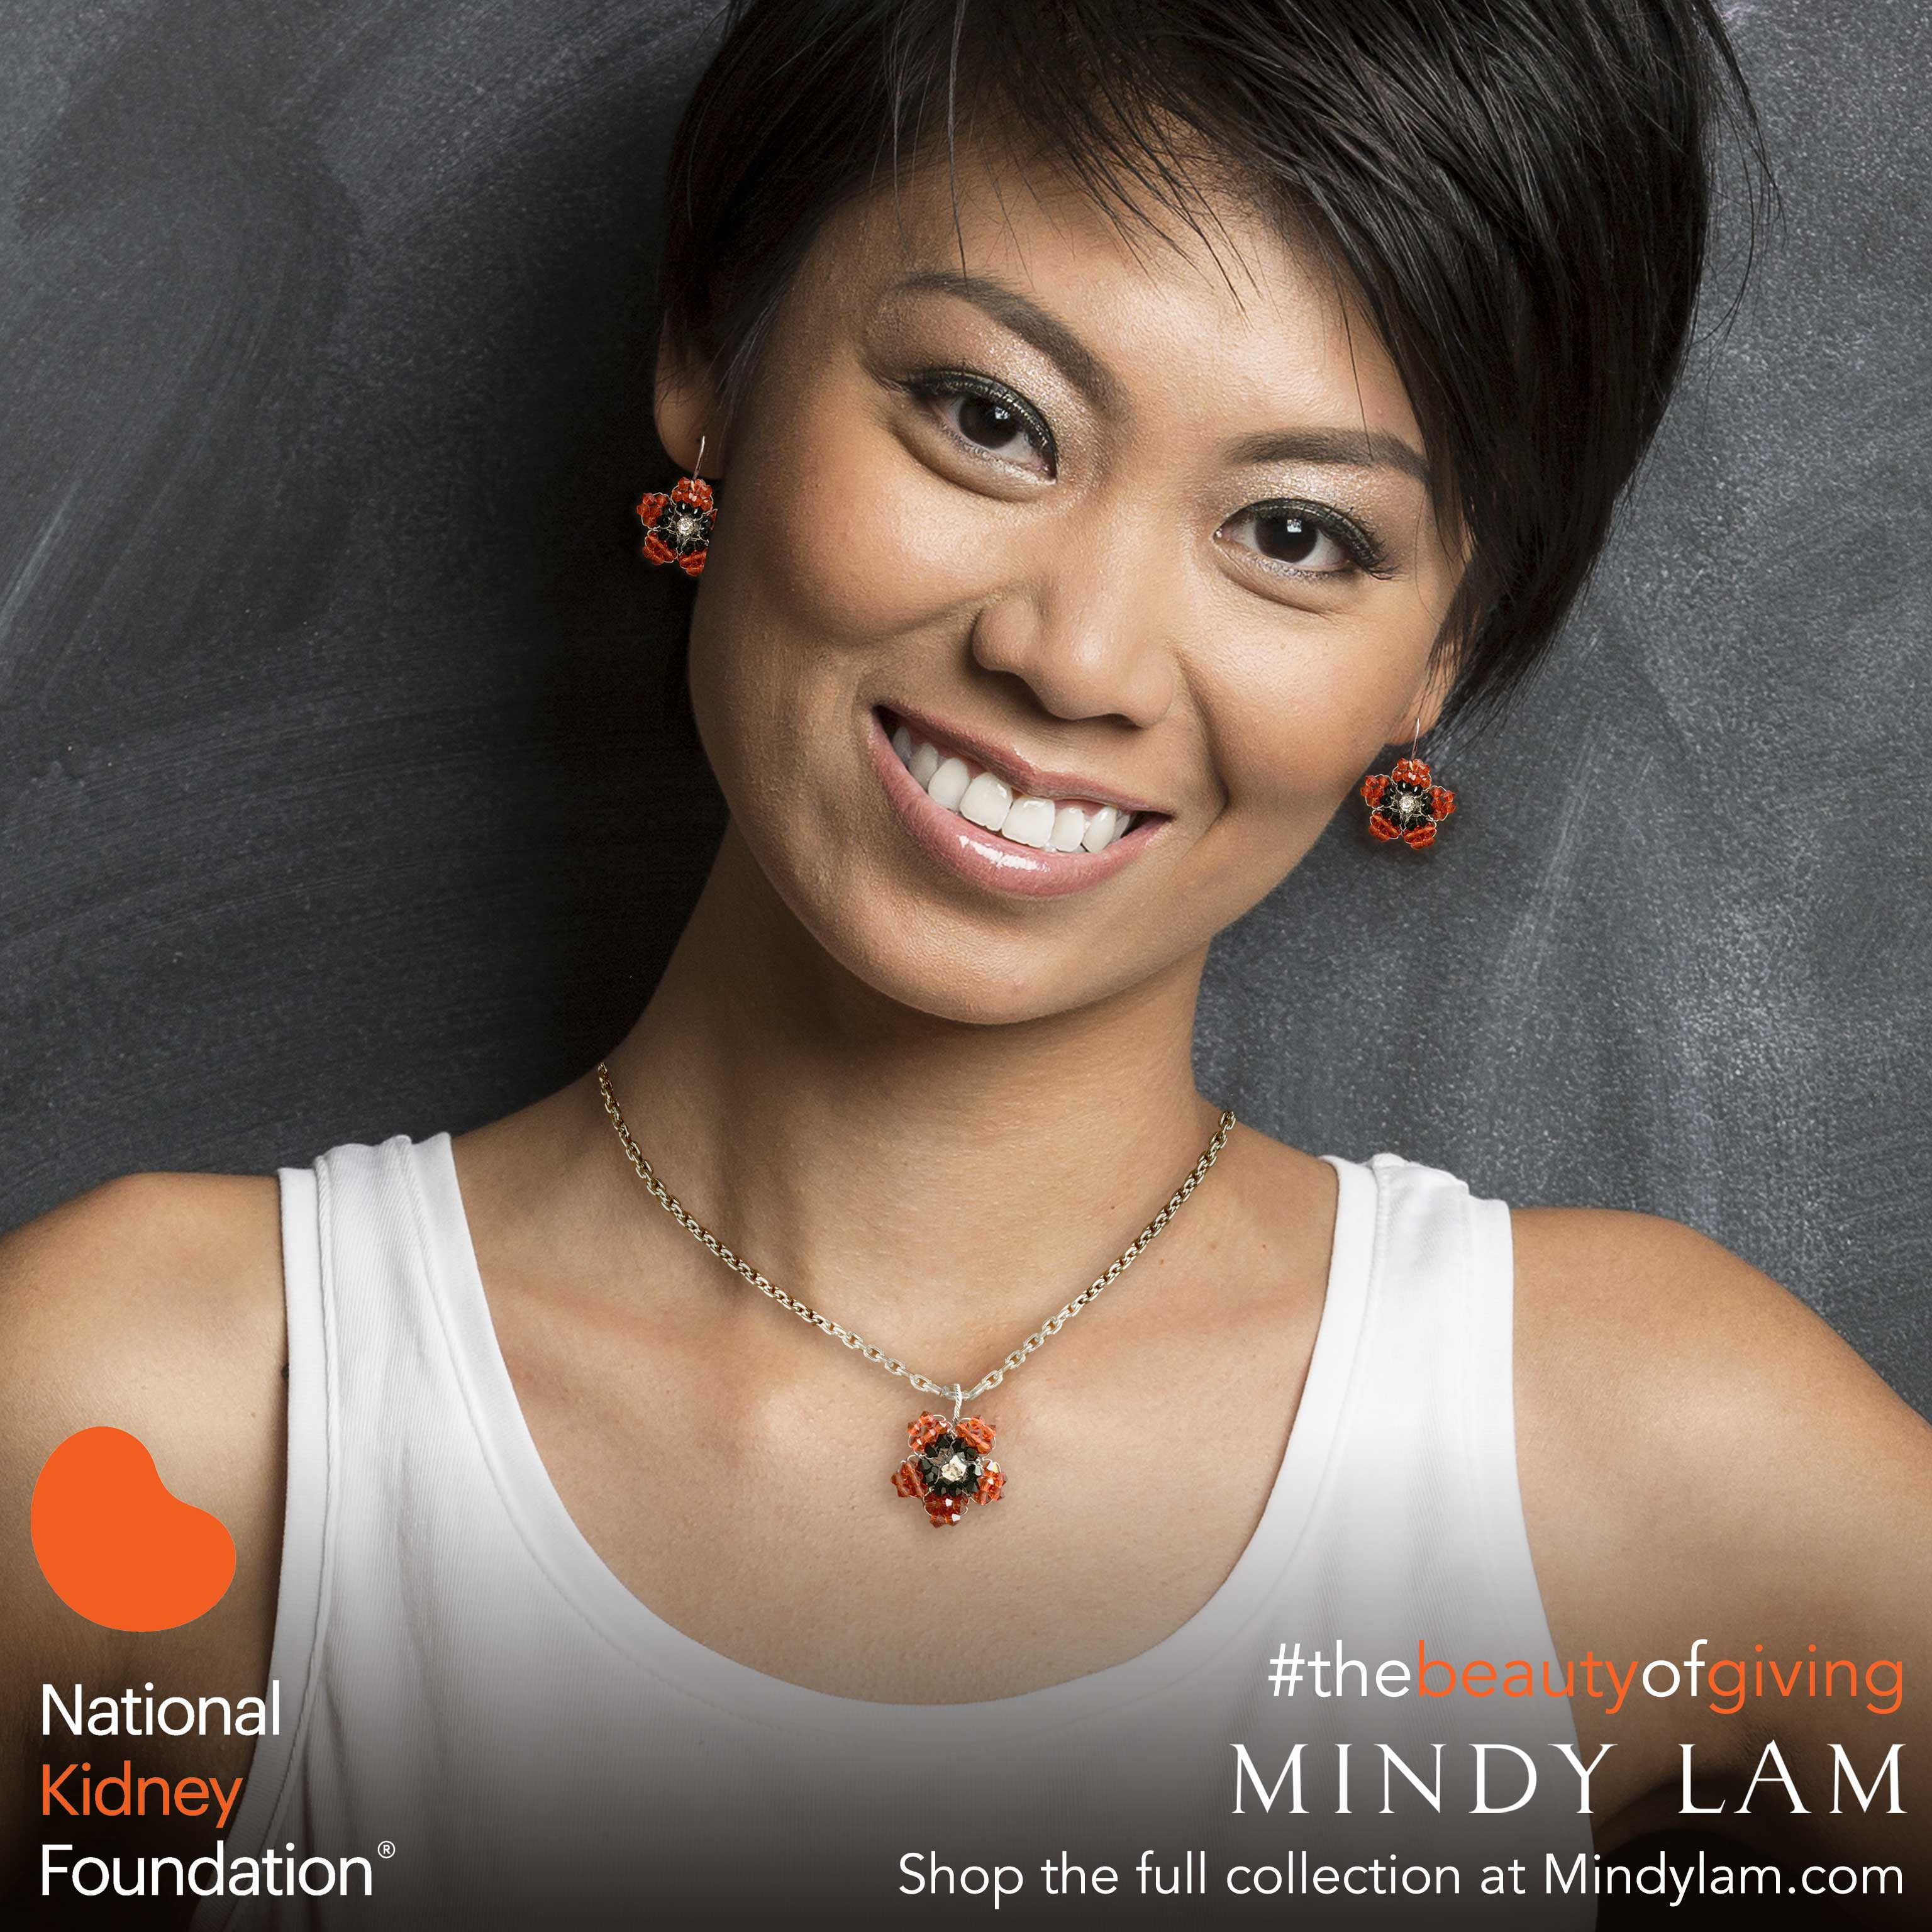 a woman with short dark hair and wearing a white tank top smiles at the camera, she is wearing a pair of orange earrings and an orange necklace designed by Mindy Lam